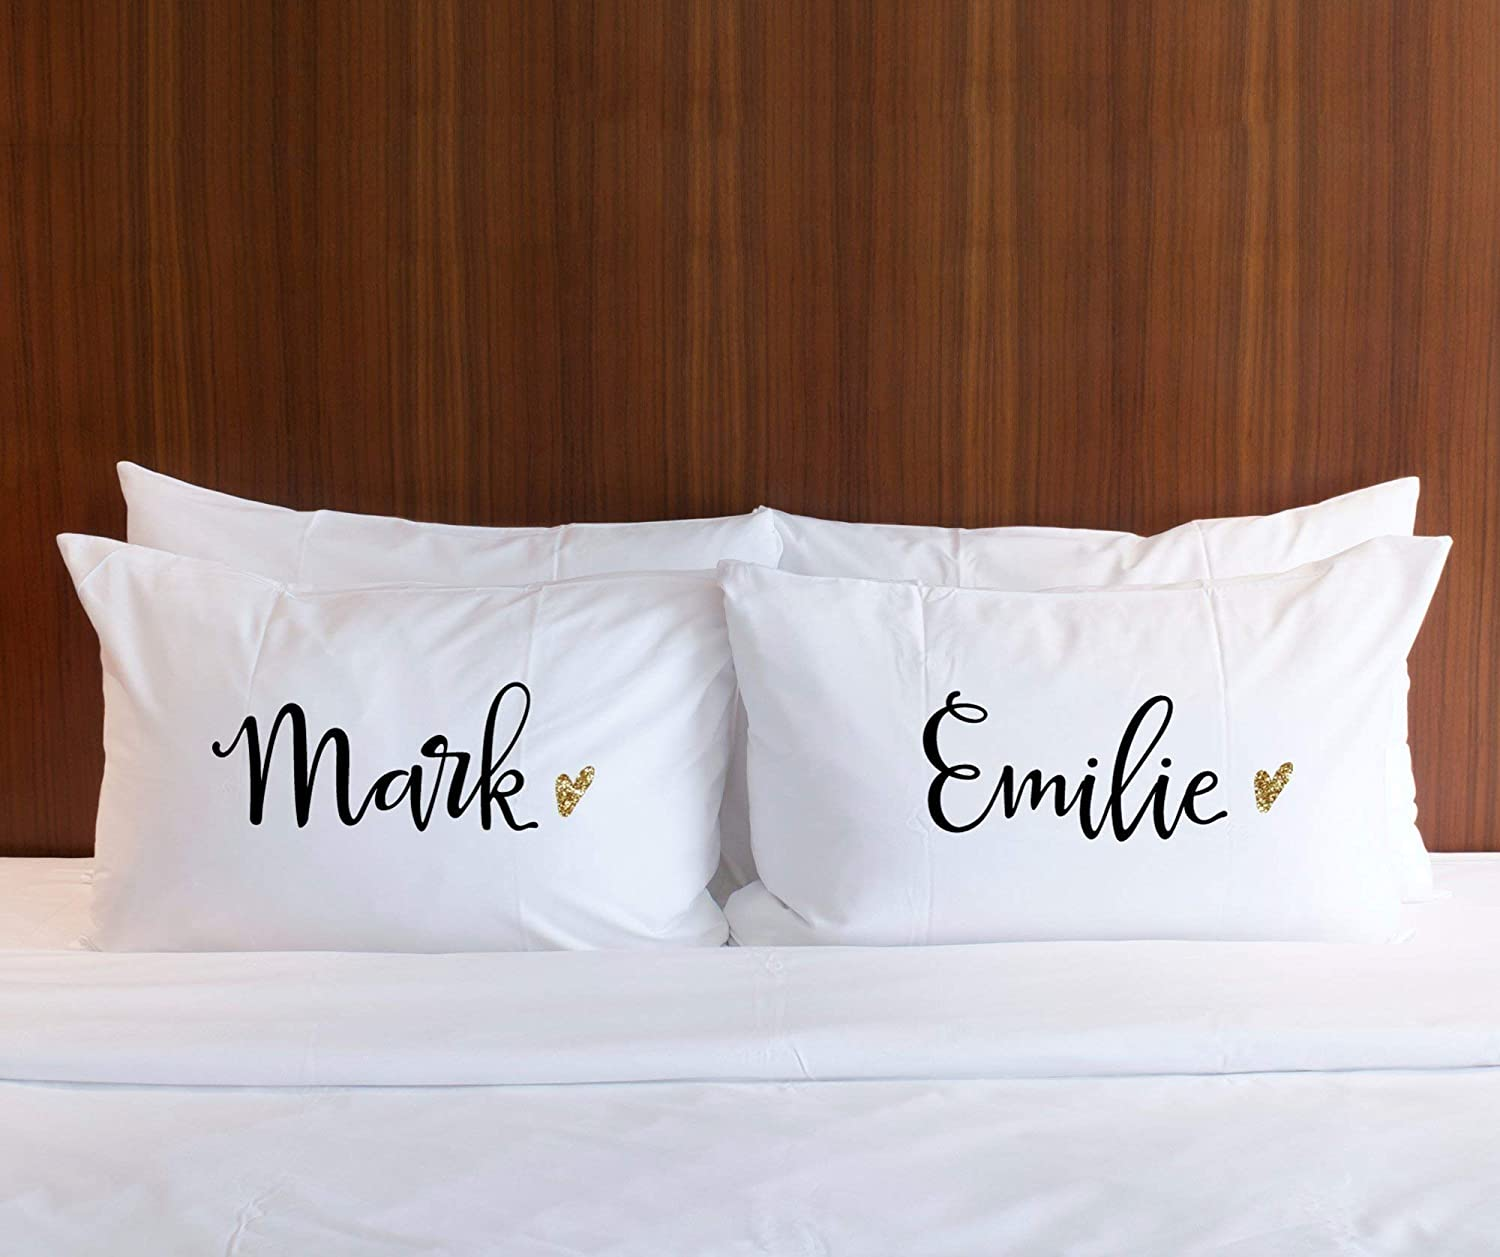 2nd-anniversary-gifts-pillow-cases